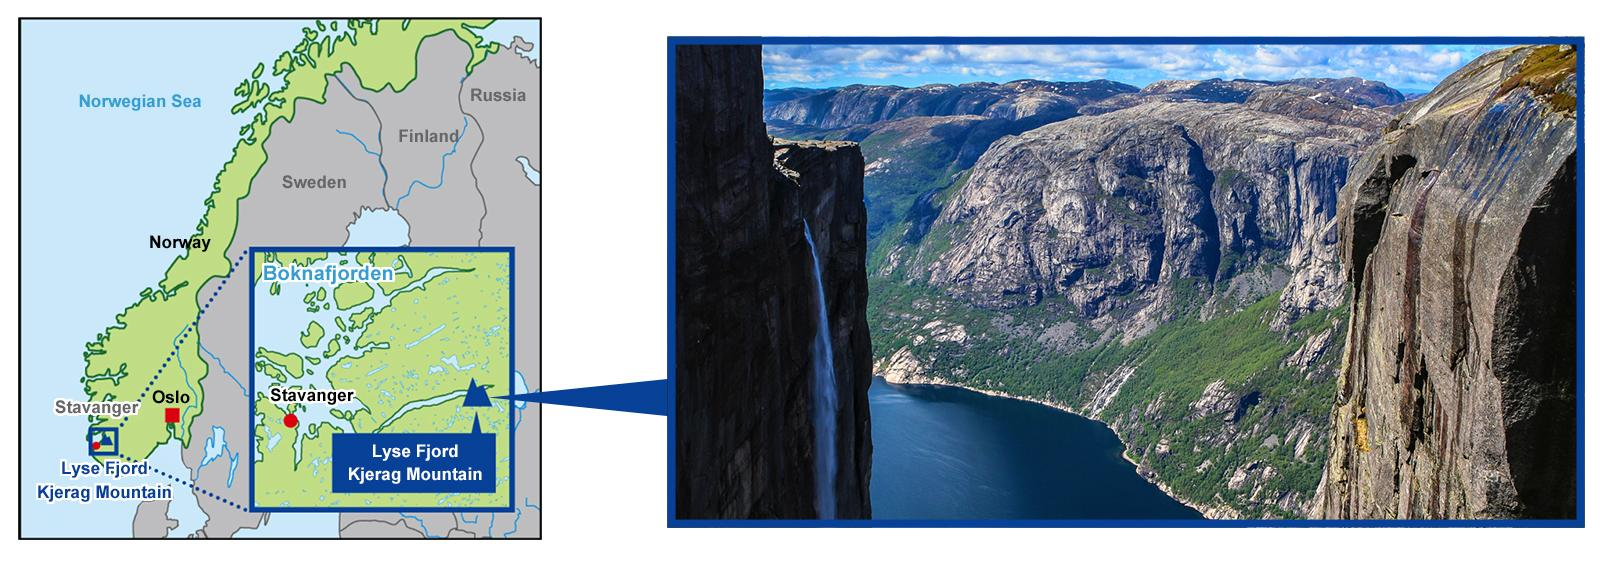 Map and image of fjord